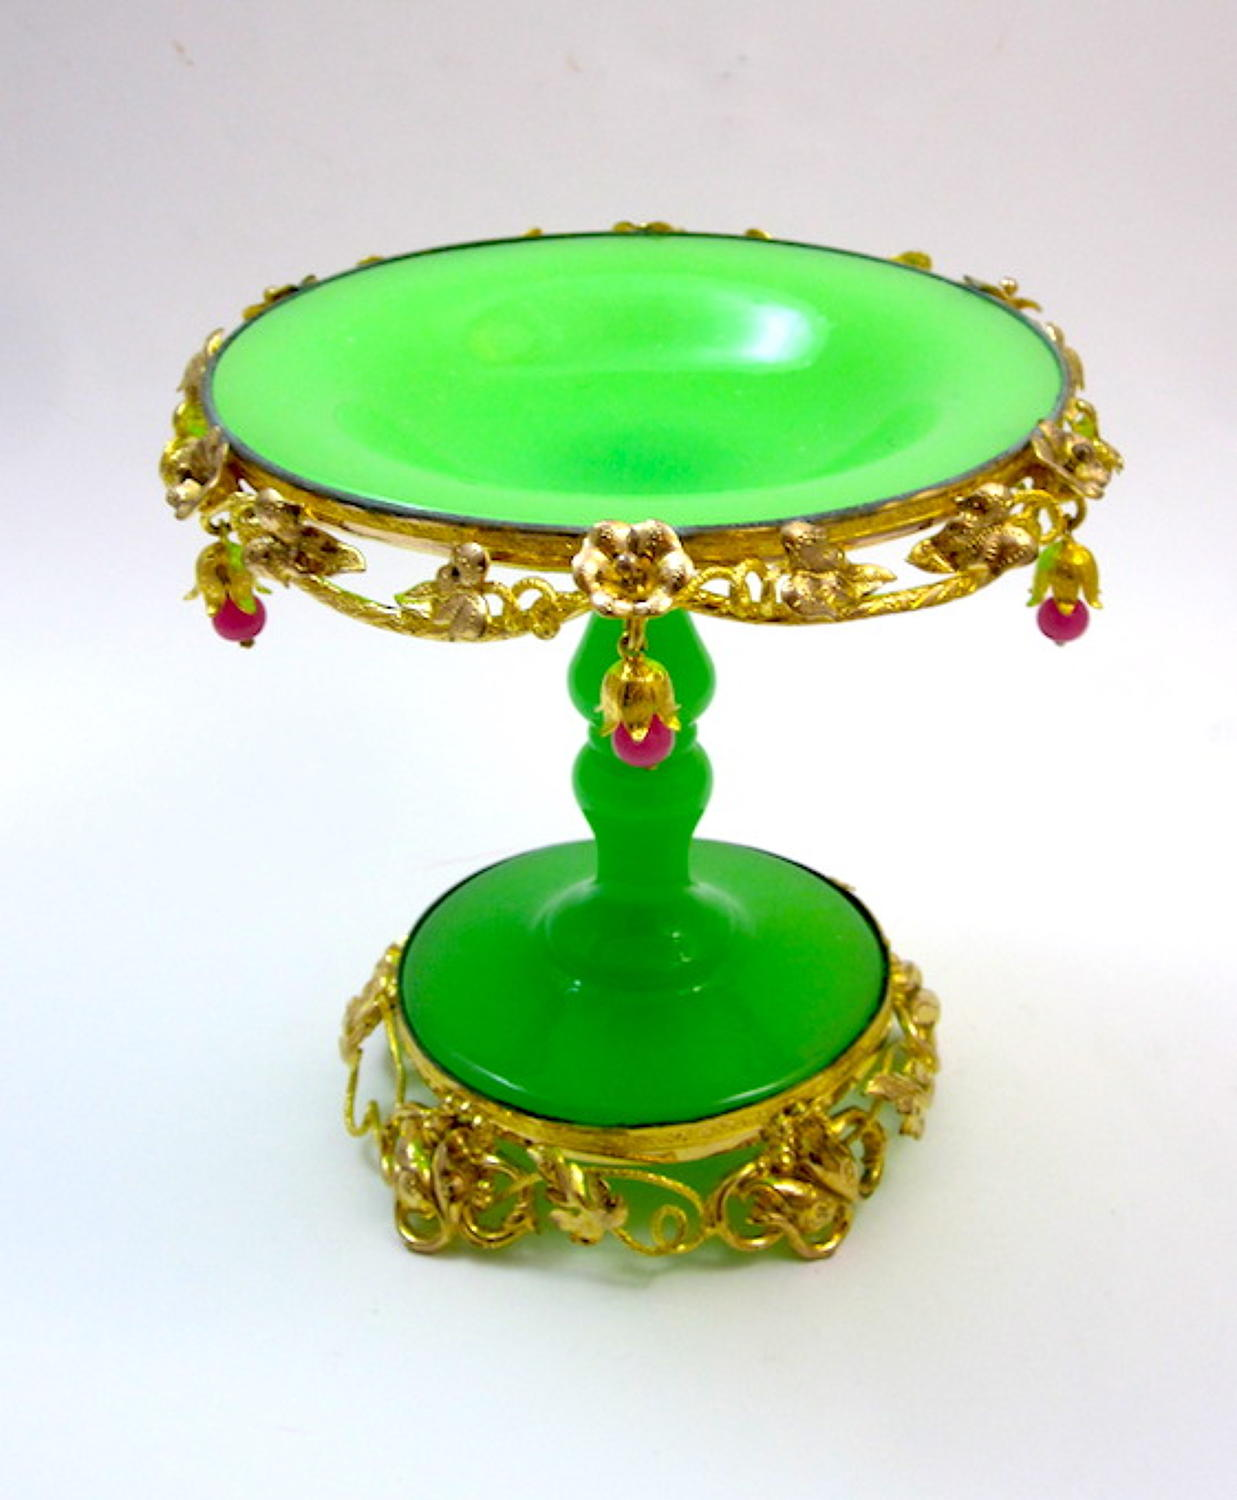 Antique French Palais Royal Green Opaline Glass Tazza Bowl